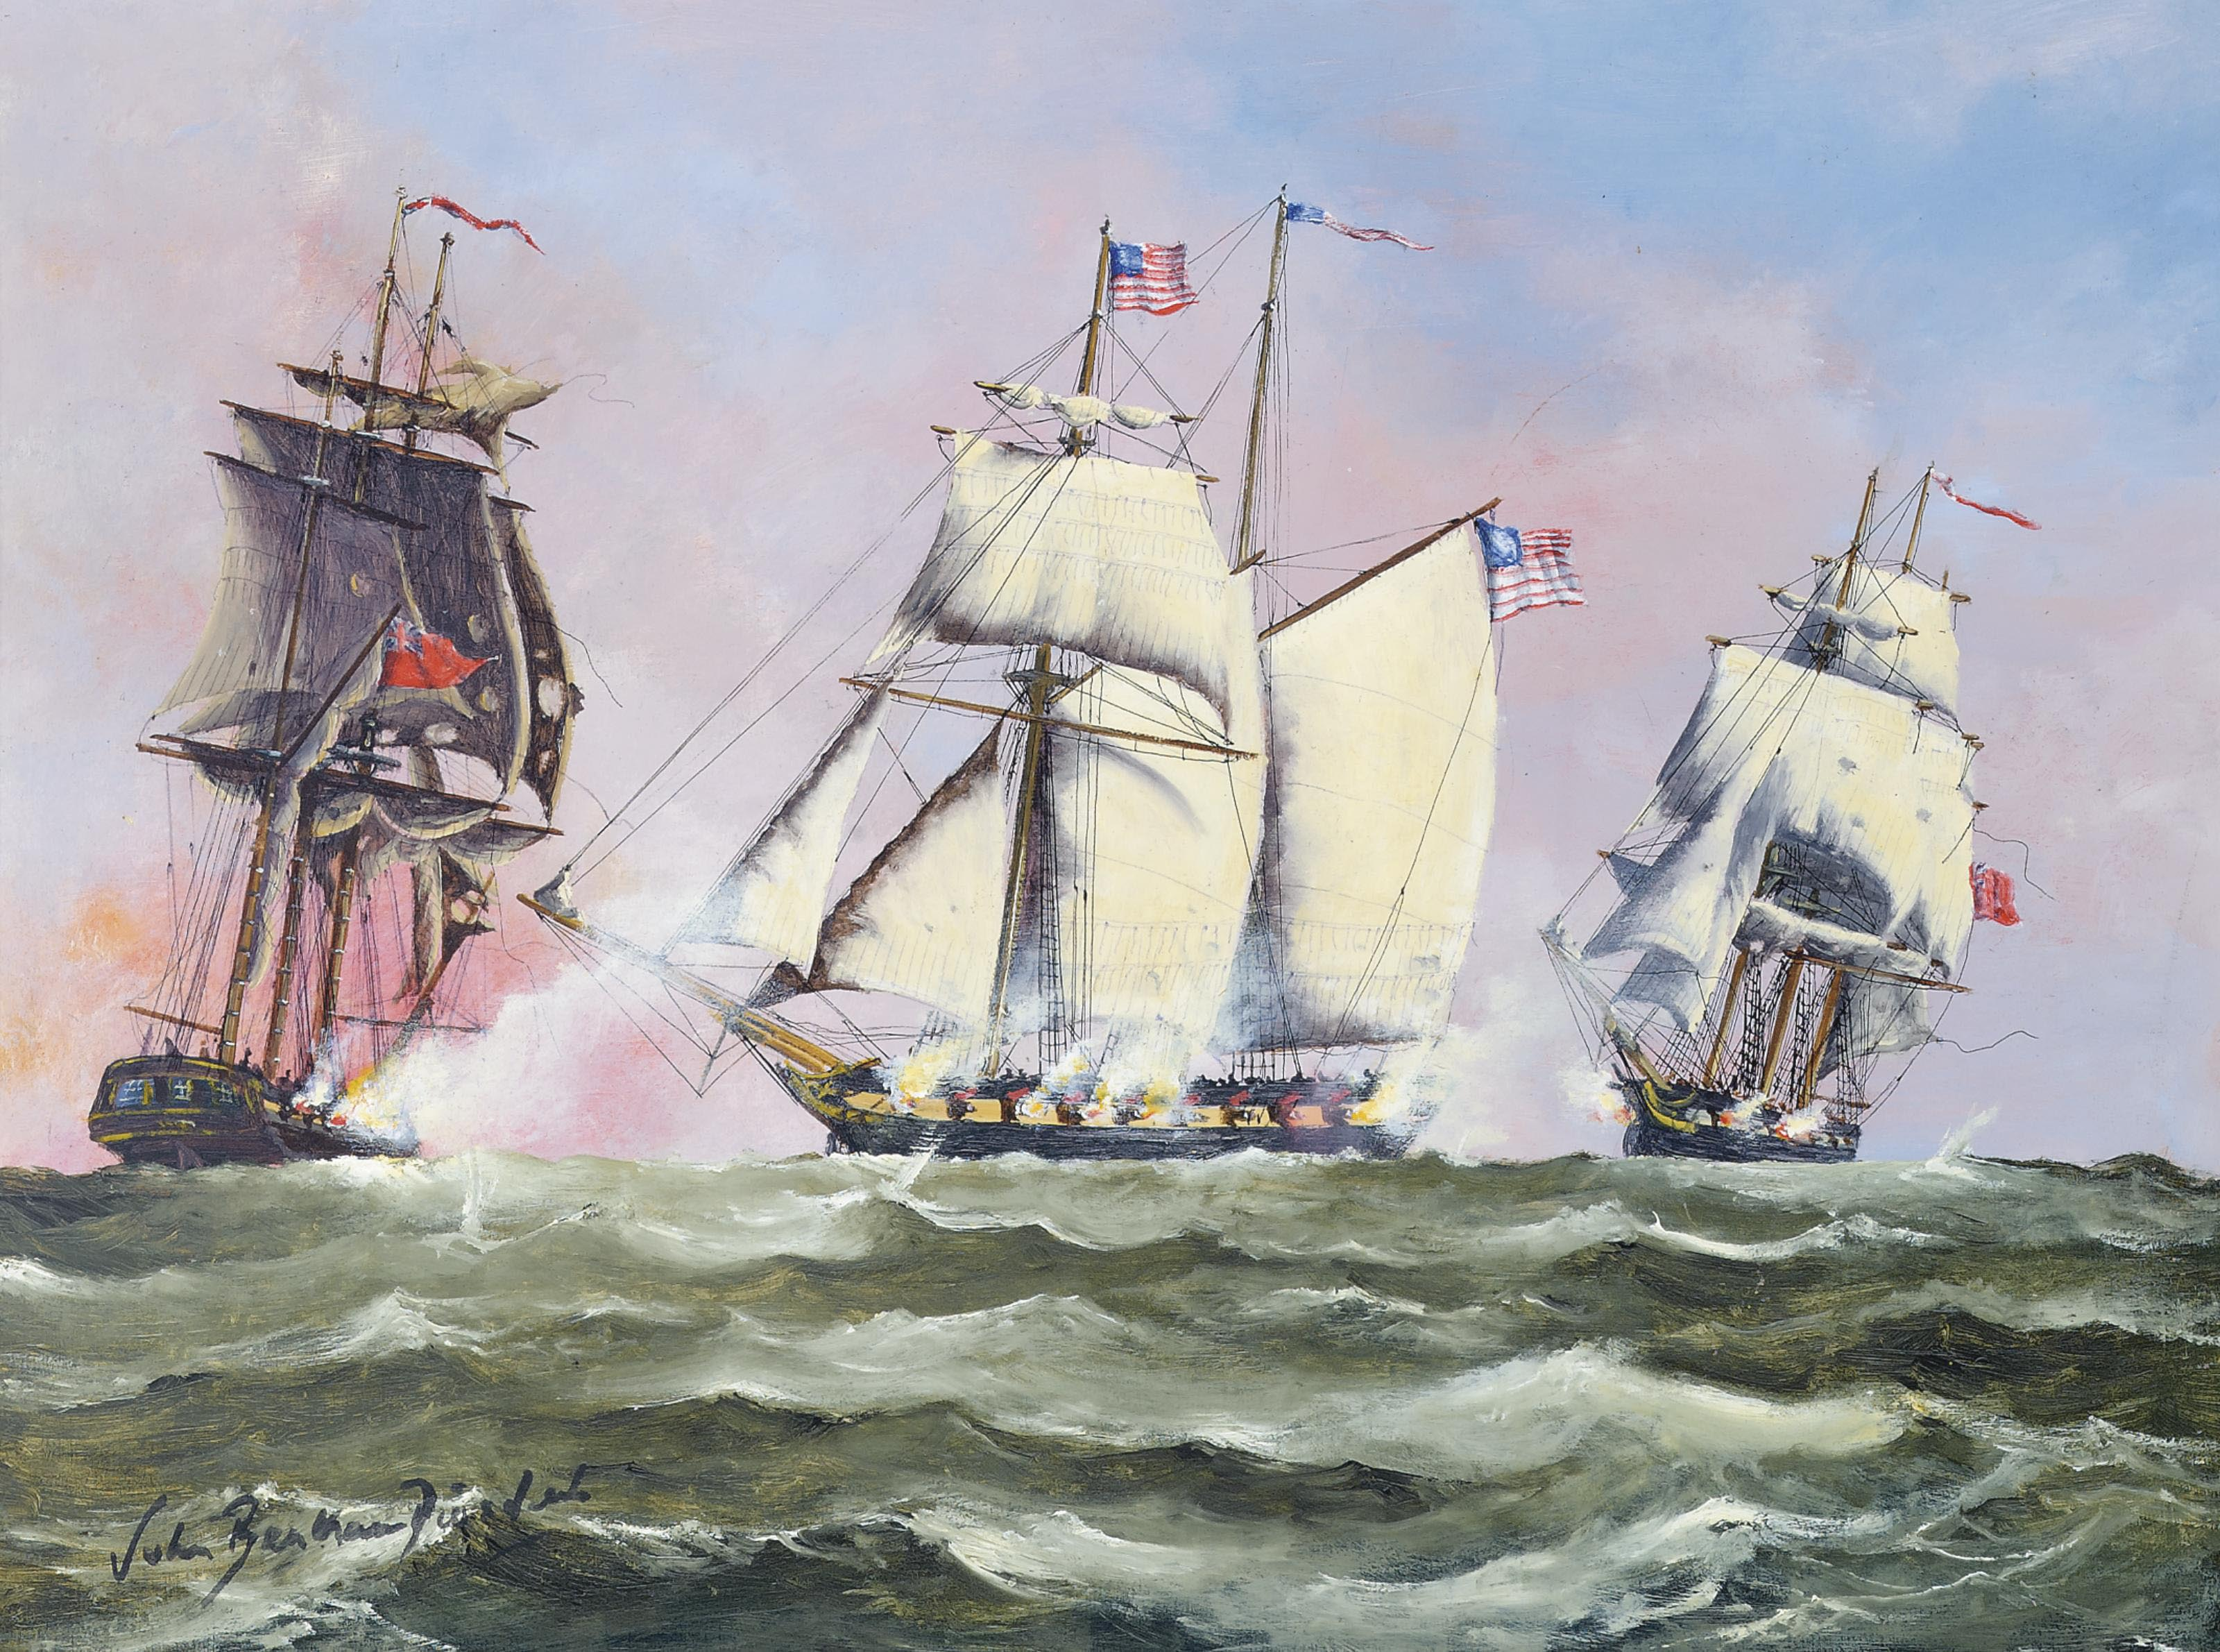 U.S. schooner Atlas engaging the British merchantmen Pursuit and Planter, 5th August 1812 (illustrated); and The U.S.S. President and the British Sixth Rate H.M.S. Little Belt off North Carolina, 15th May 1811